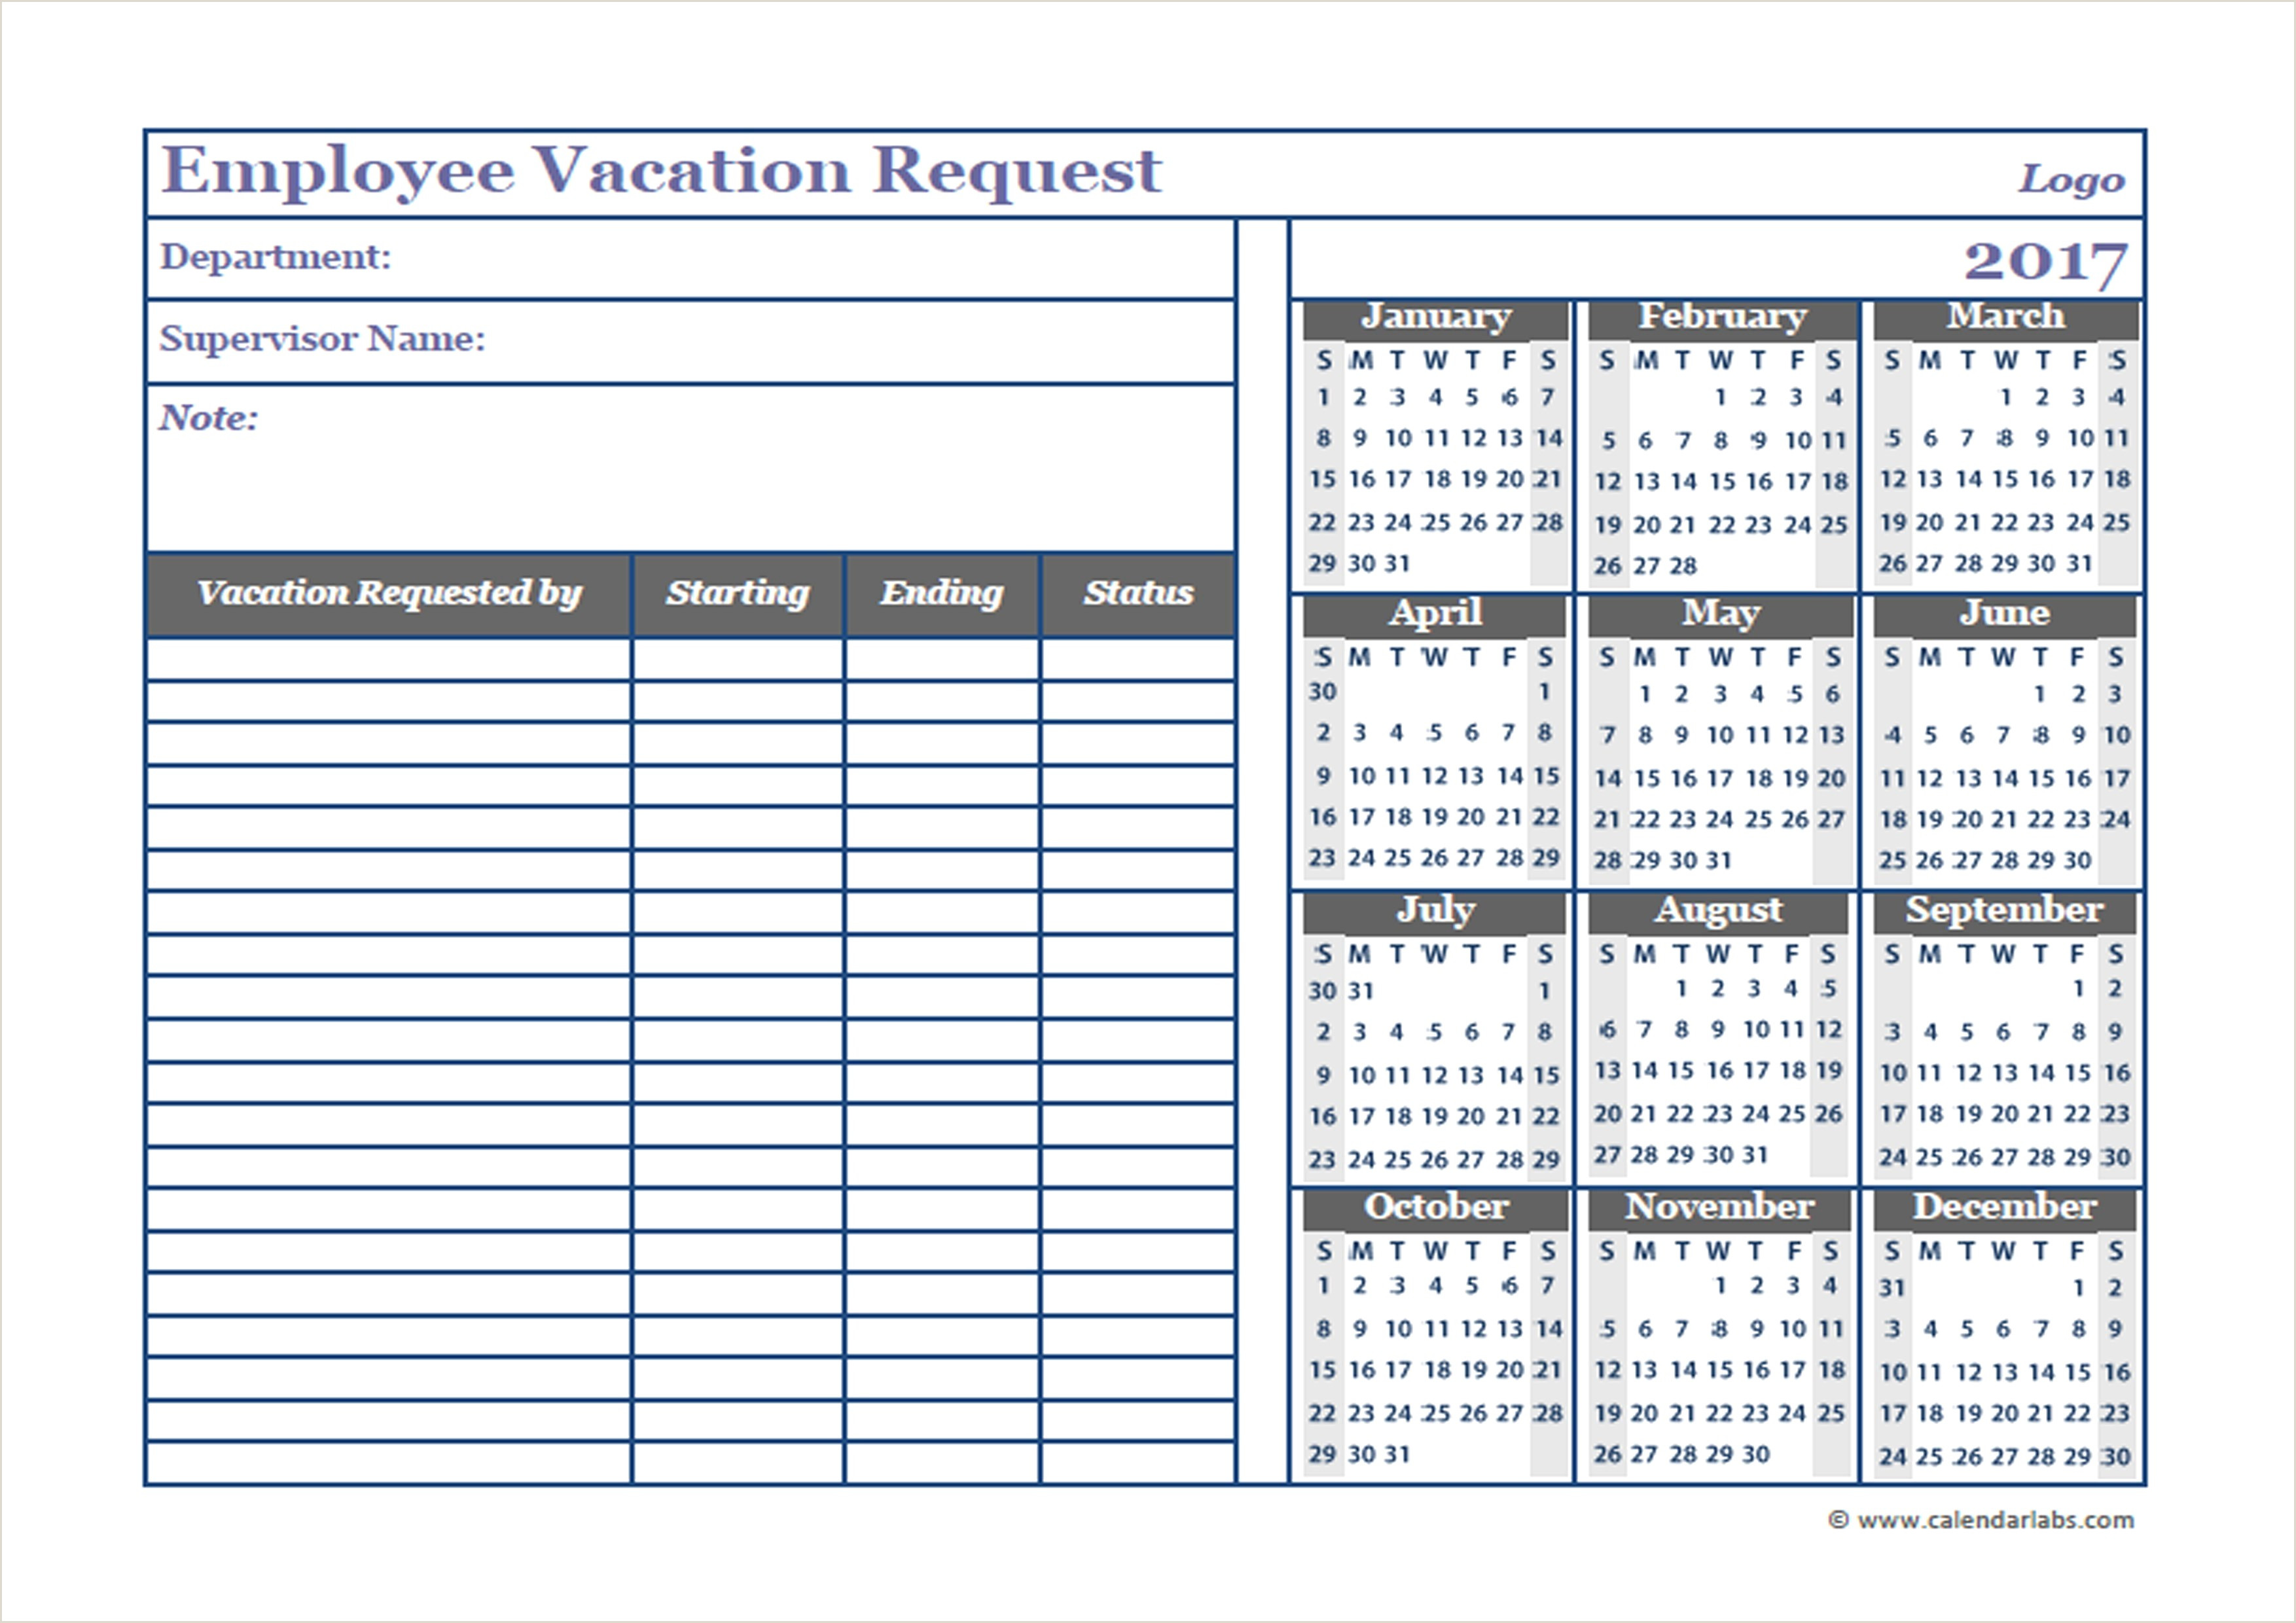 Fmla Rolling Calendar Tracking Spreadsheet Employee Vacation Calendar Template 2017 Printable for Free